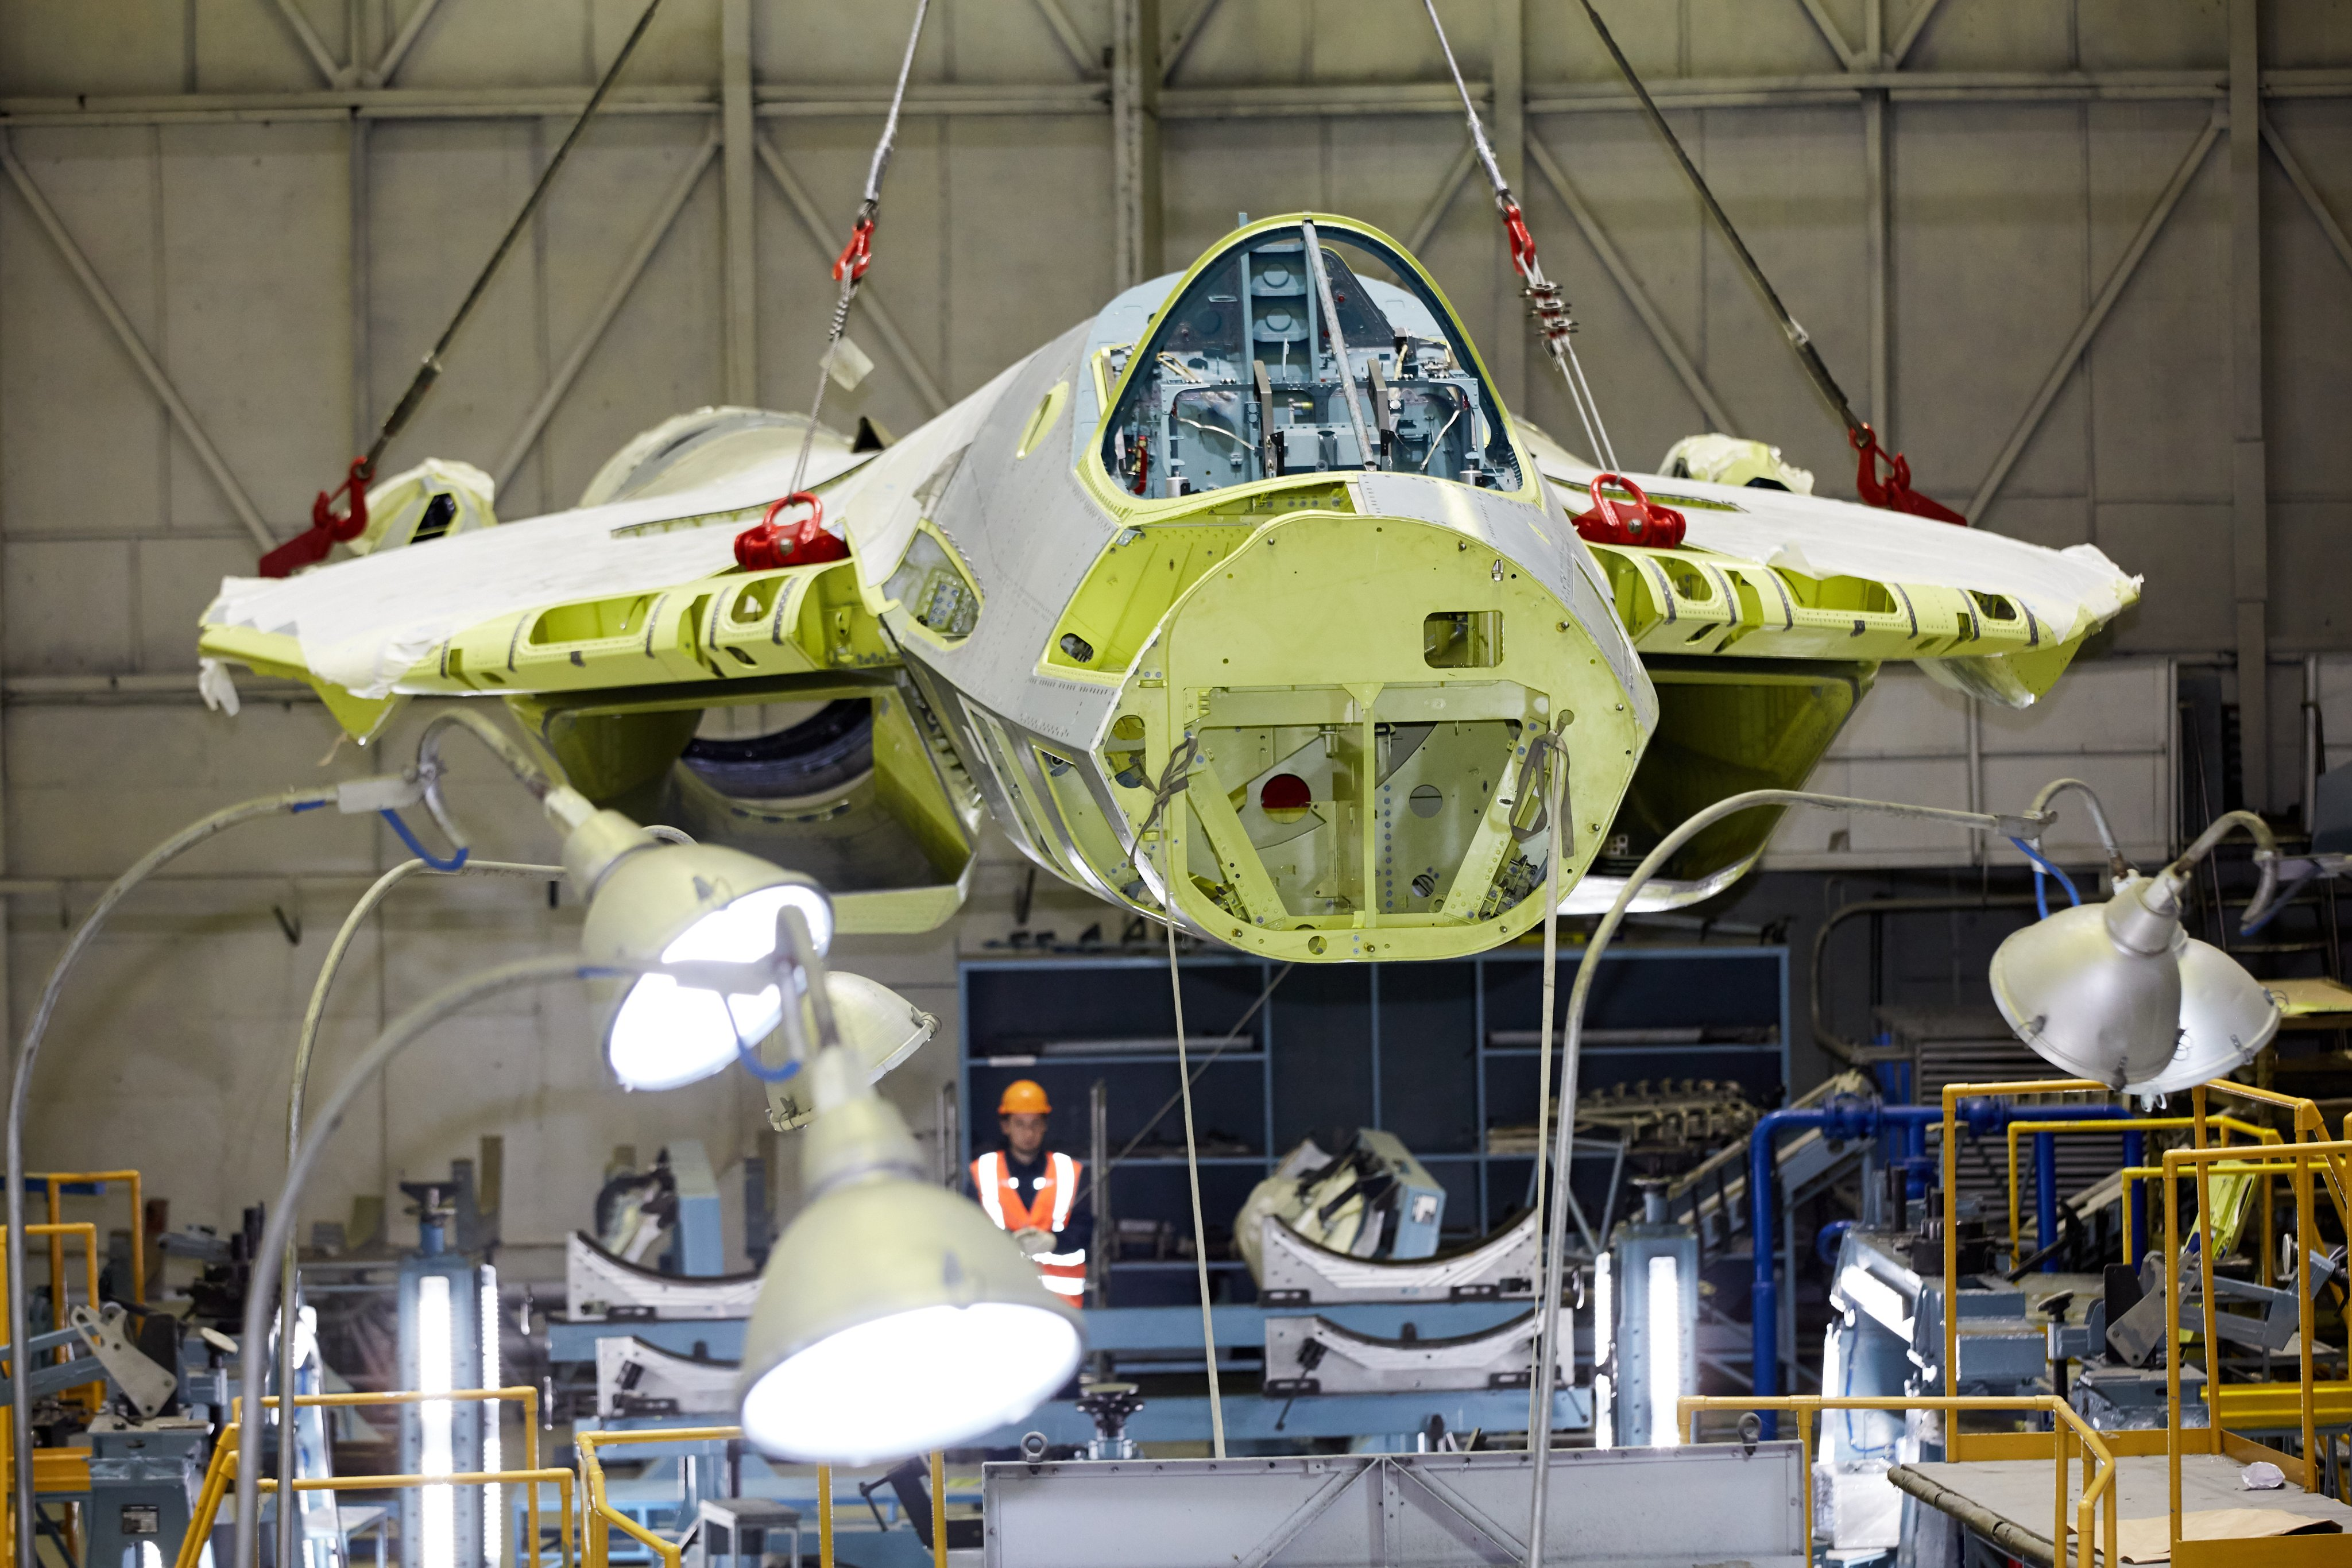 Sukhoi Su-57 at the assembly shop of the Komsomolsk-on-Amur Aircraft Plant